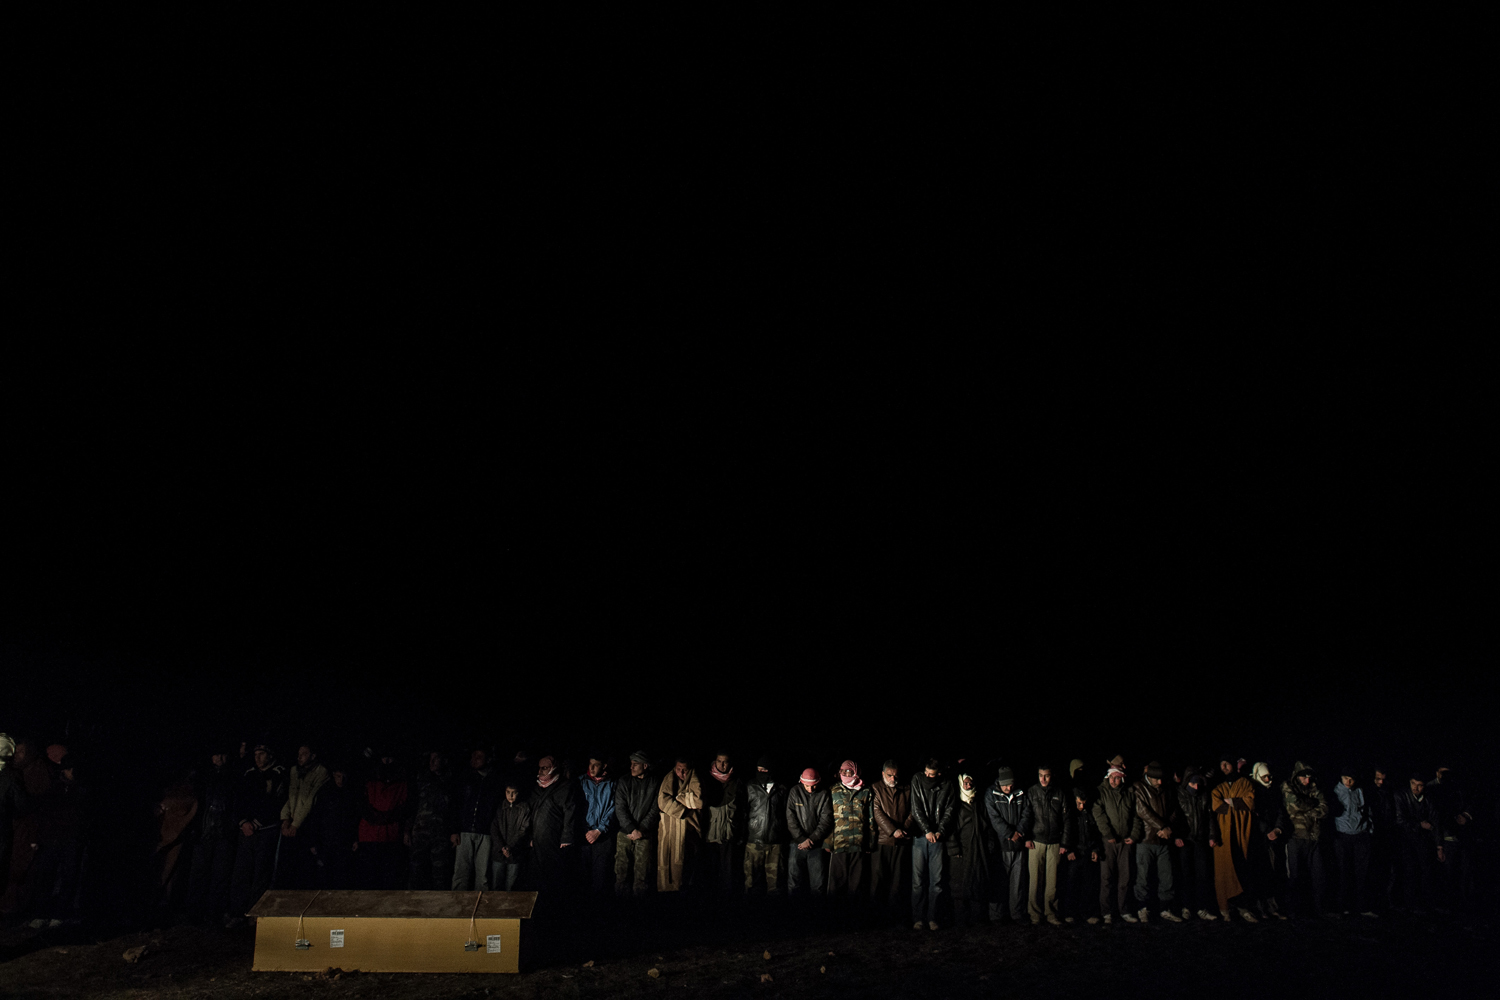 Rémi Ochlik                                                              Residents of Bouyada village pray at the 3 a.m. funeral of four young men who died after being crushed in their home during a shelling by Assad forces. Funerals often take place in the middle of the night to avoid attacks by the army.                                                               For those who knew Rémi well, it's strange to see that one of his very last pictures, if not the ultimate one, is of a funeral. You can't help but see a symbol in it. He took this photo of four slain people stuck in the same coffin, and a few hours later he himself was killed by a shell. He didn't even get a coffin; it took days to recover his body amid the intense fighting in Homs.                                                              Rémi had something very serious and thorough about the way he took his pictures. He'd been wanting to get into Syria for months. When he finally got inside, near the town of Zabadani, it was simply too dangerous to make any good images. He managed to squeeze out through the border, back into Lebanon. And then straight away, he wanted to go back, to make stronger images. He crossed into the al-Qusayr area, where he took this last photo. A few hours later, he got into Homs in the black of night. He wrote us an e-mail to describe how incredibly tense and confused it was in the besieged Bab Amr neighborhood. The e-mail was bleak, but he concluded, 'I plan to start taking photos first thing tomorrow morning.' That never happened.  —Alfred de Montesquiou, senior correspondent for Paris Match